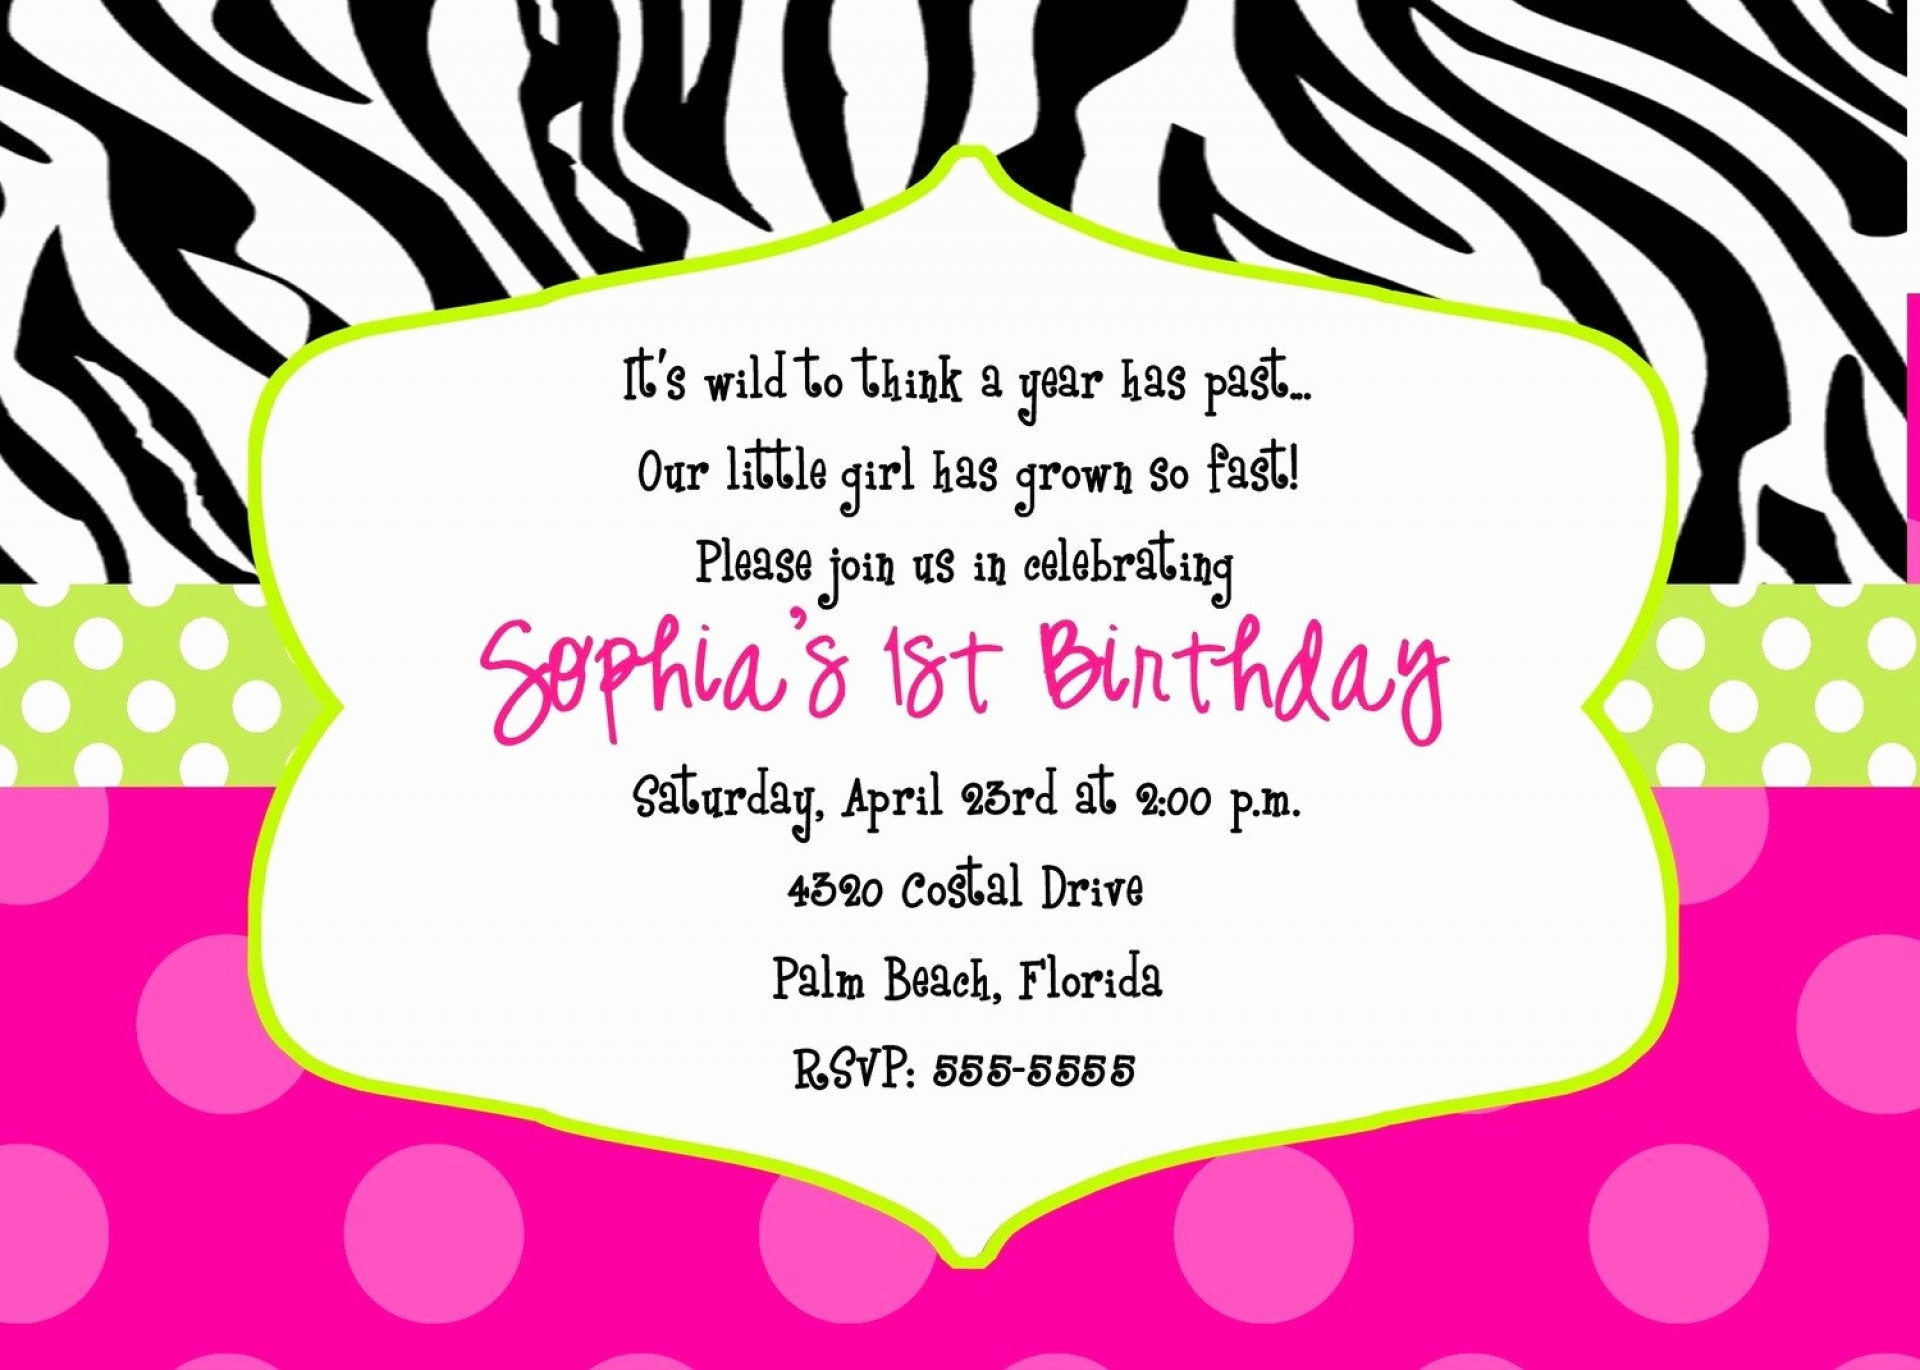 015 Free Printable 40Th Birthday Partyion Templates And Ideas Zebra - Zebra Invitations Printable Free